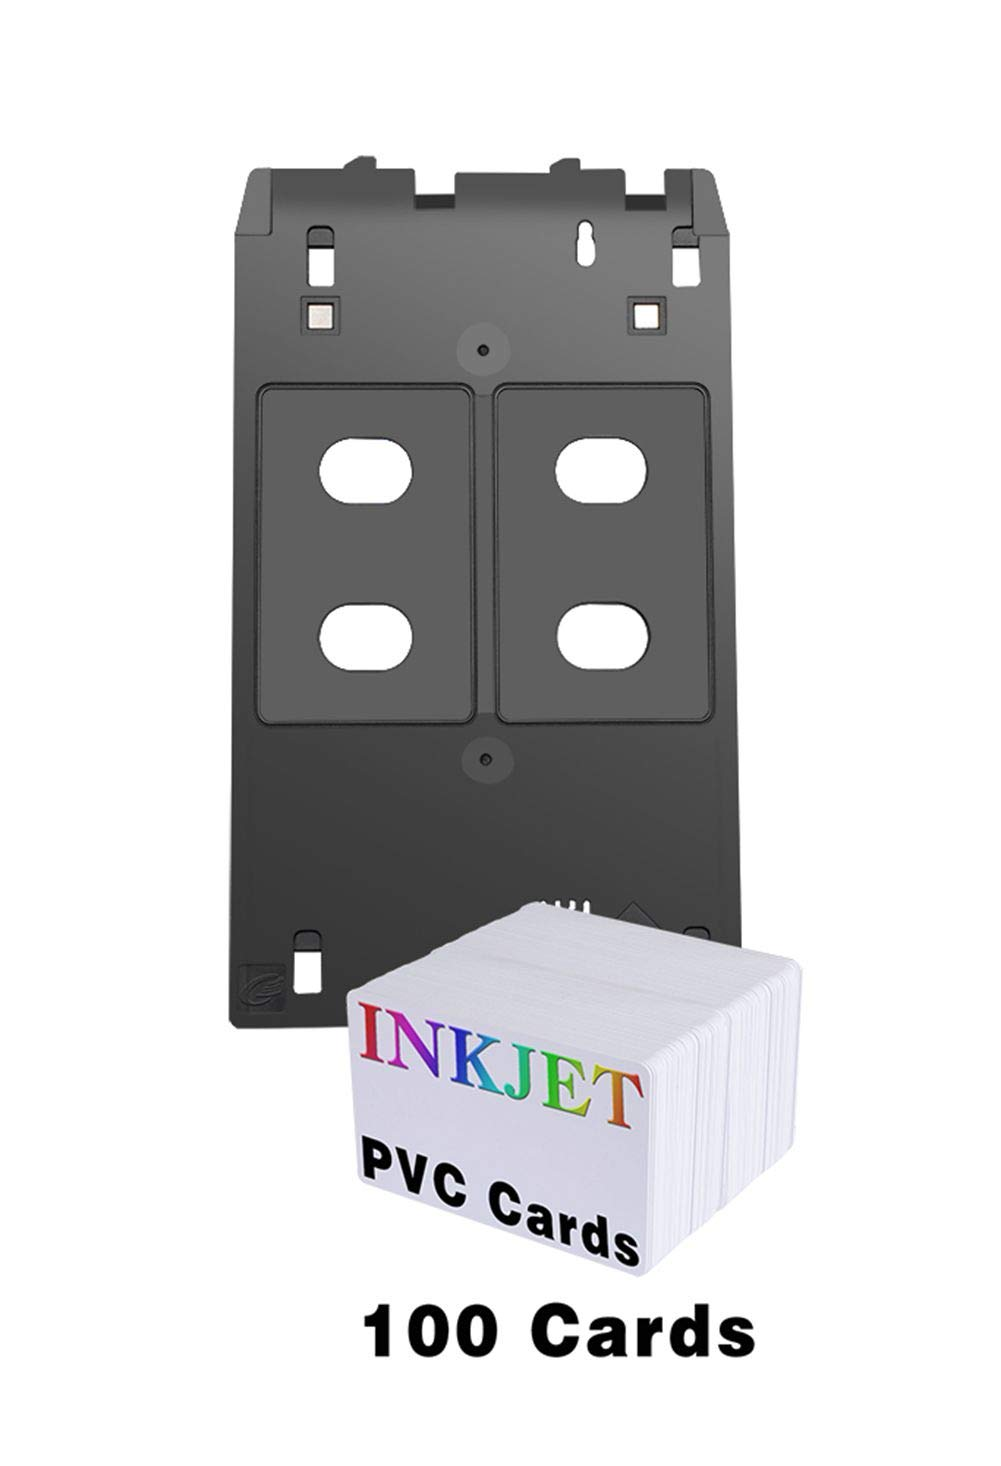 Gen's Inkjet PVC Card Tray for Canon J Tray Printers- Canon IP5400 IP7120 IP7130 IP7230 IP7240 IP7250 Mg5420 Mg5430 Mg5450 Mg5550 Mg6320 Mg6330 Mg6350 Mg6450 Mg6530 Mg7120 Mg7130 and More by GEN (Image #1)